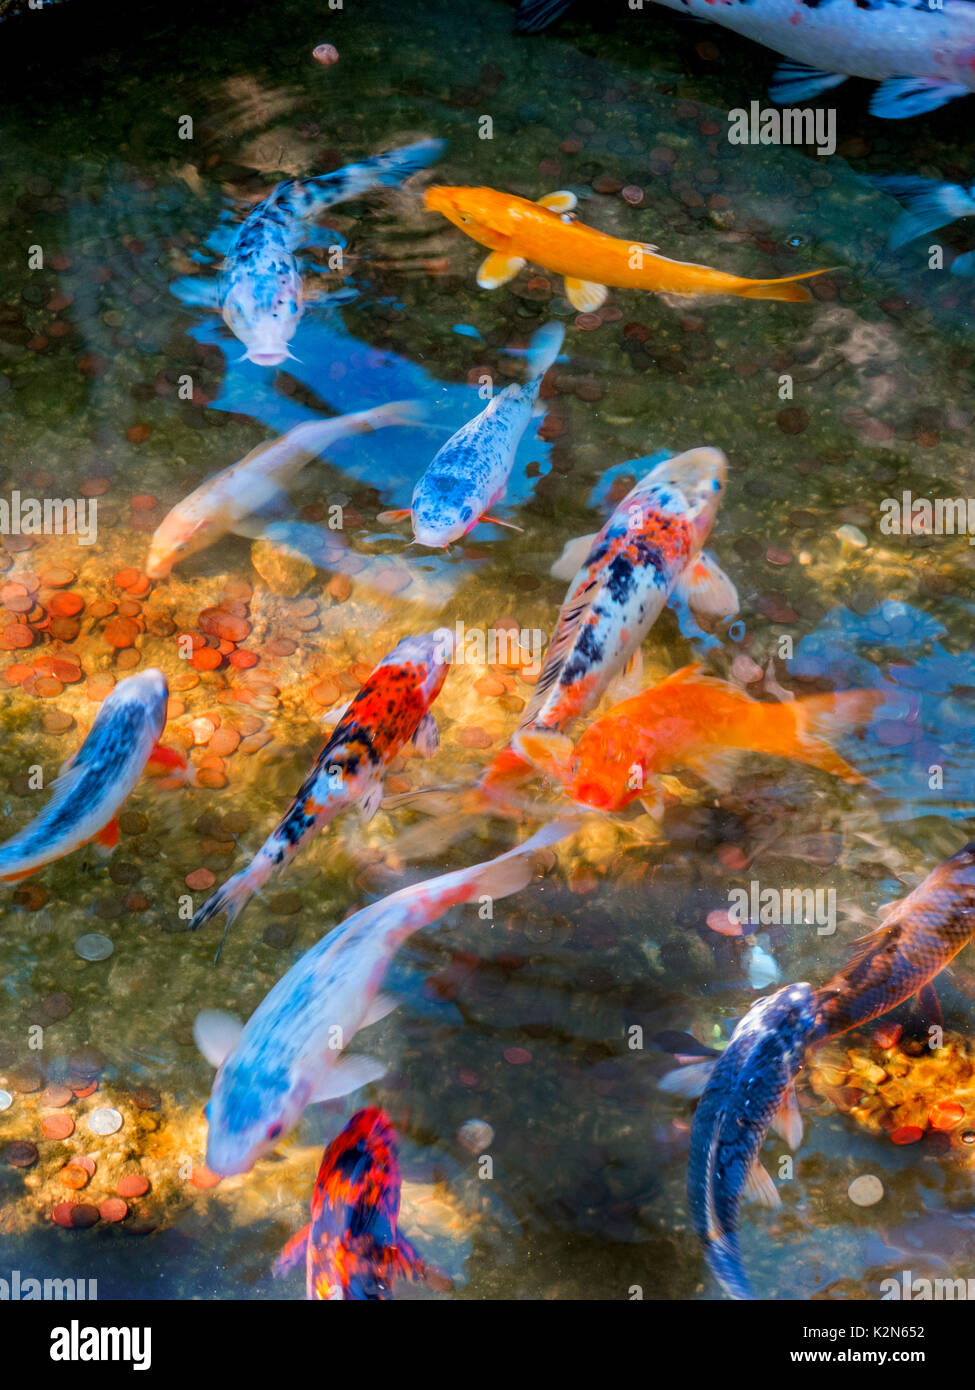 Colorful Koi, Cyprinus carpio or Common Carp, swim in a museum pond in San Marino, CA. Note coins in pond thrown to make wishes. - Stock Image